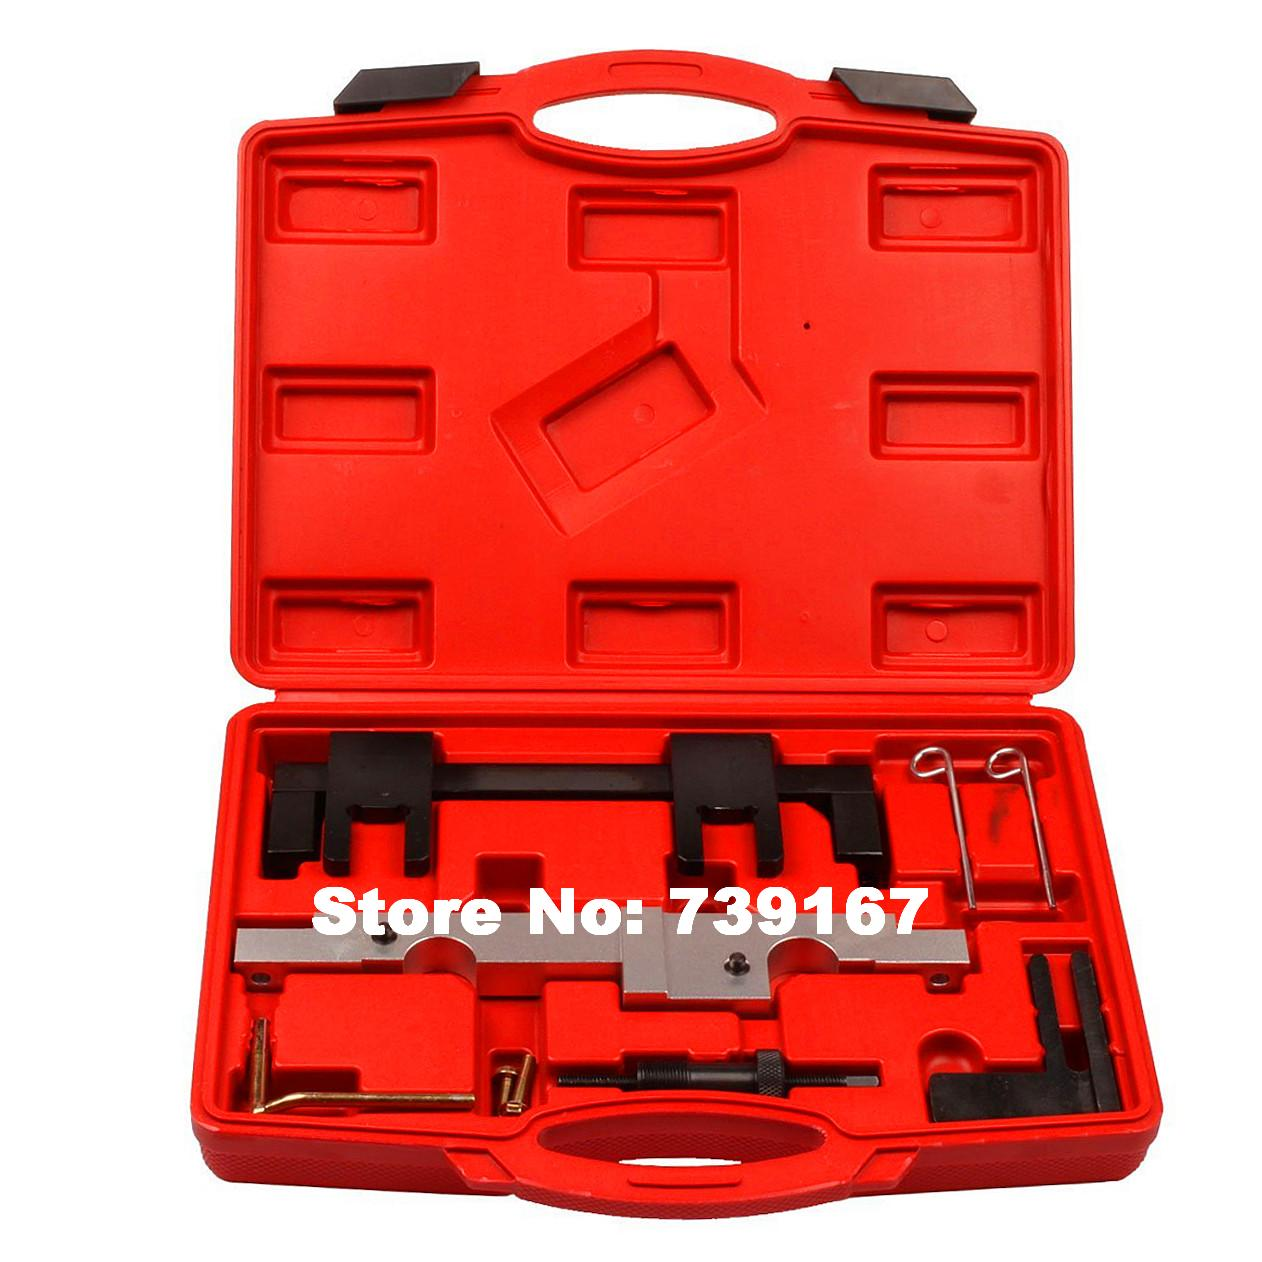 Engine Camshaft Vanos Sensor Locking Alignment Timing Tool Kit For BMW 116/118/120/320/520 N43 1.6/2.0 Chain Drive Series ST0141 цены